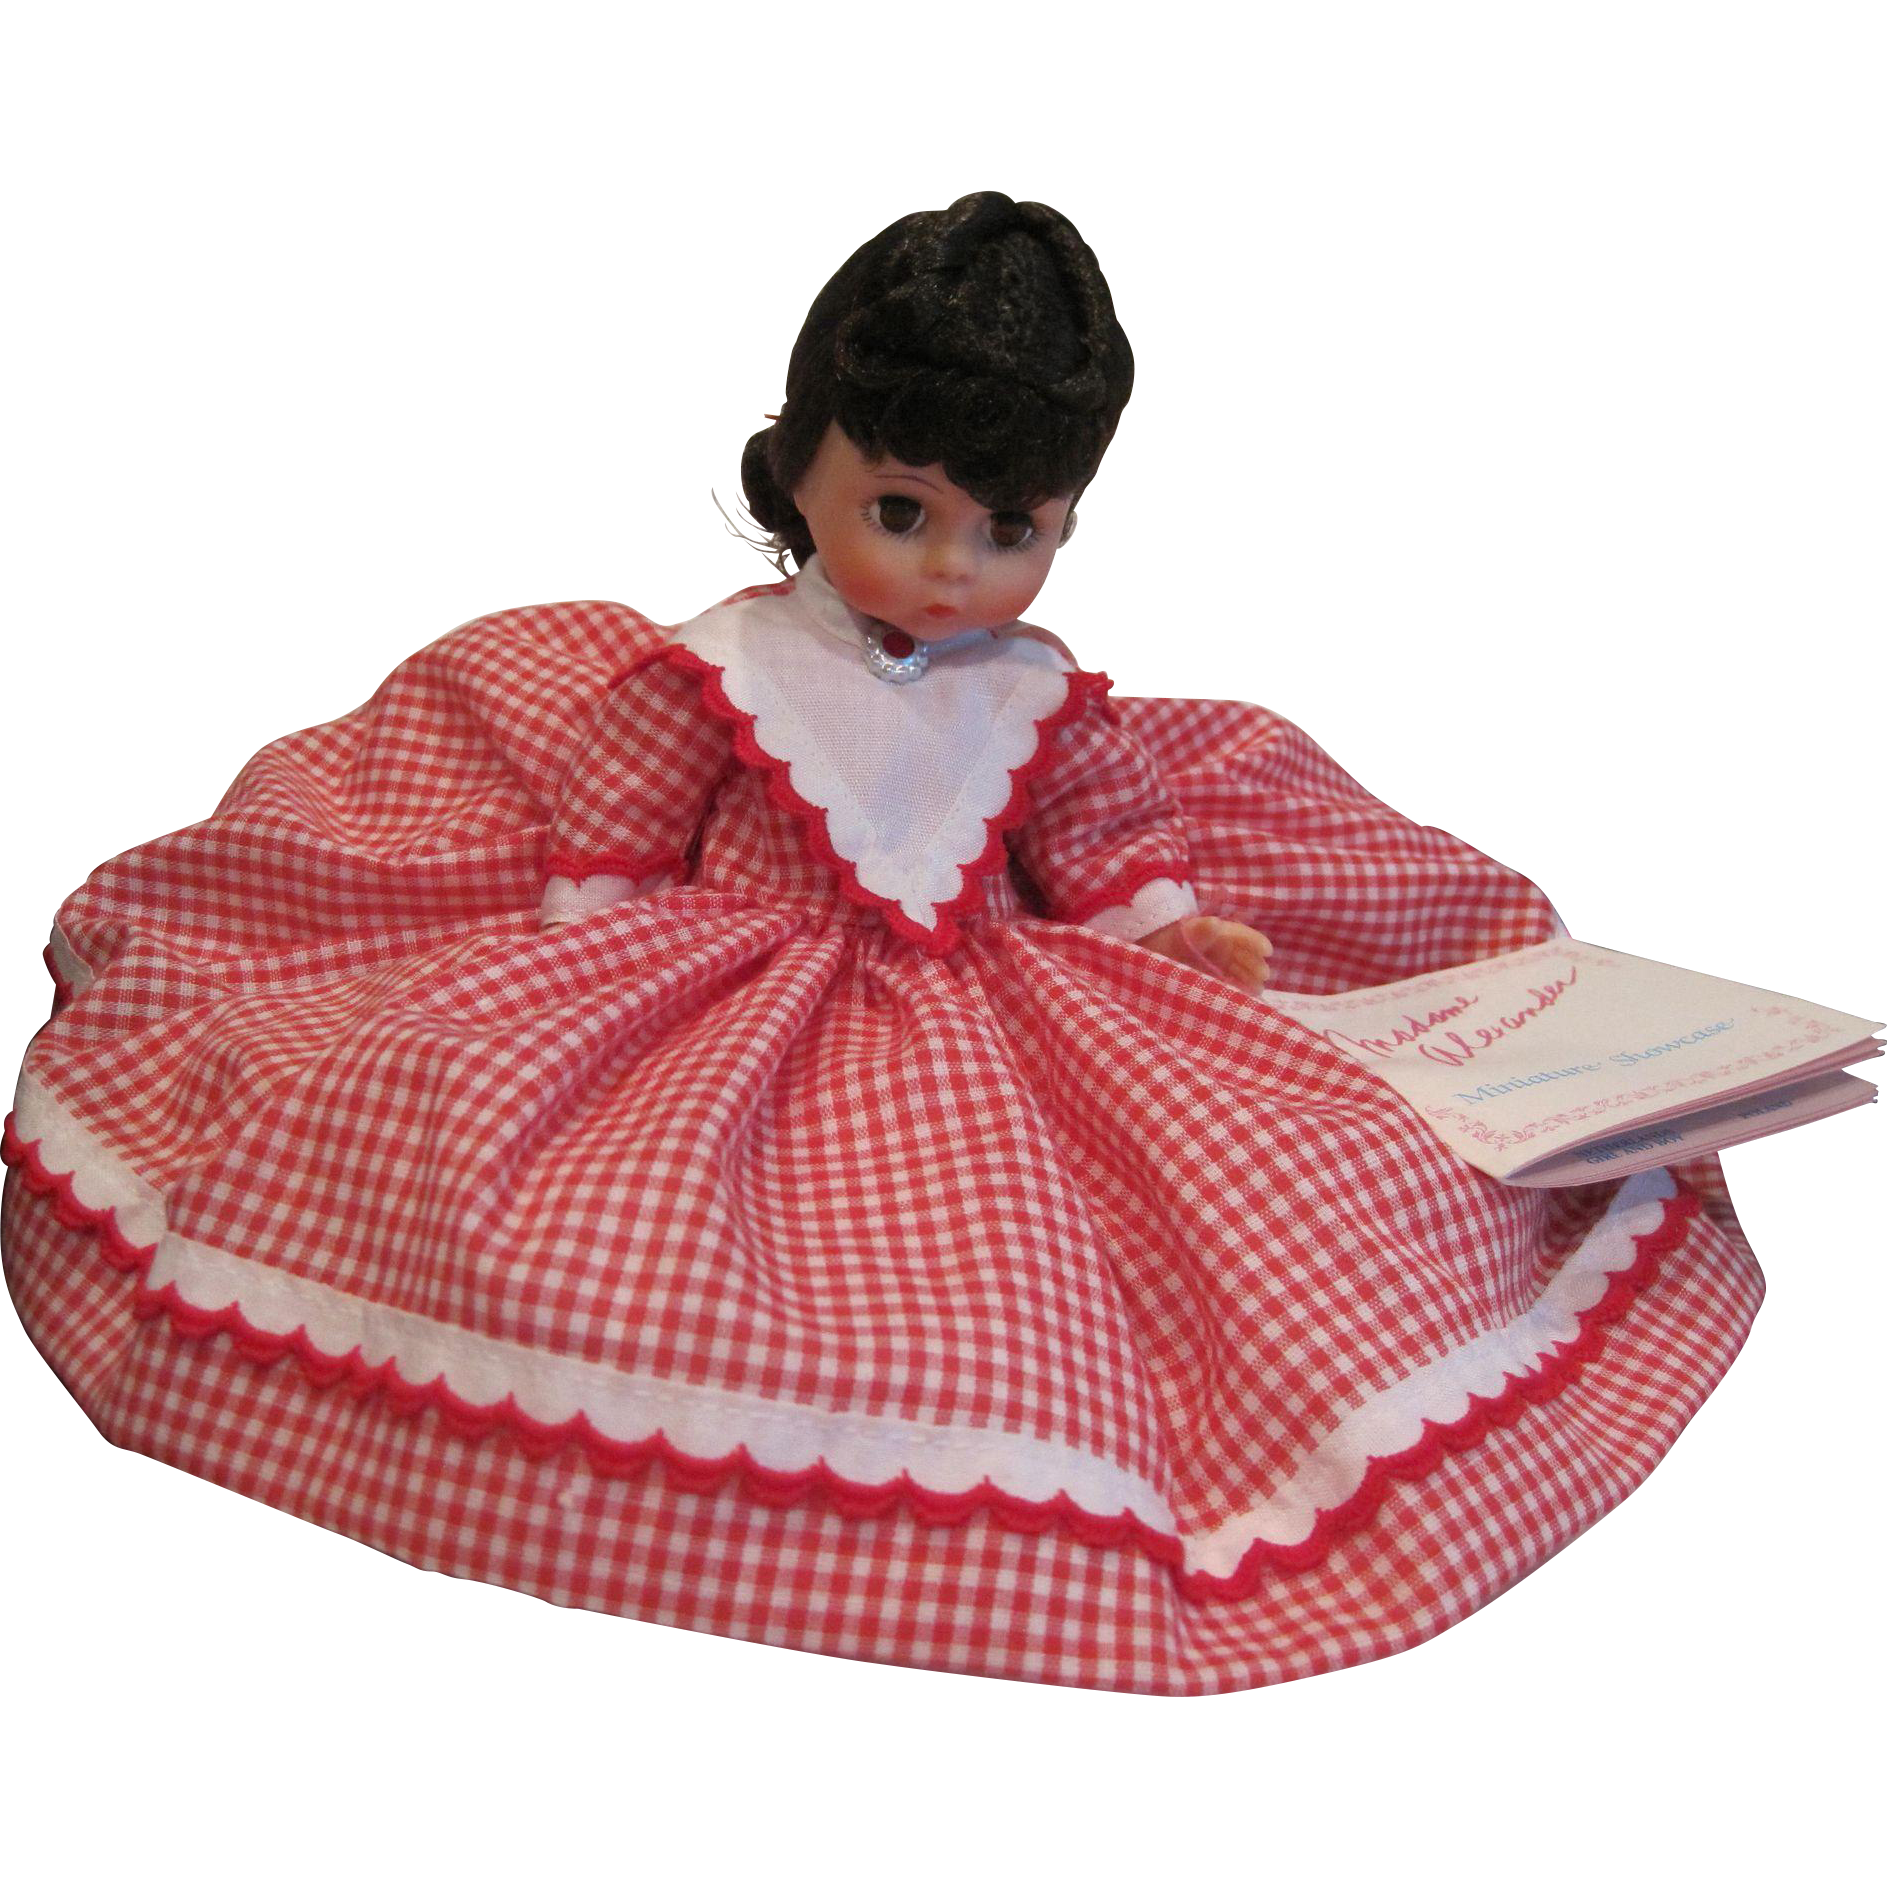 Vintage Madam Alexander doll Jo #407 from the Little Women series